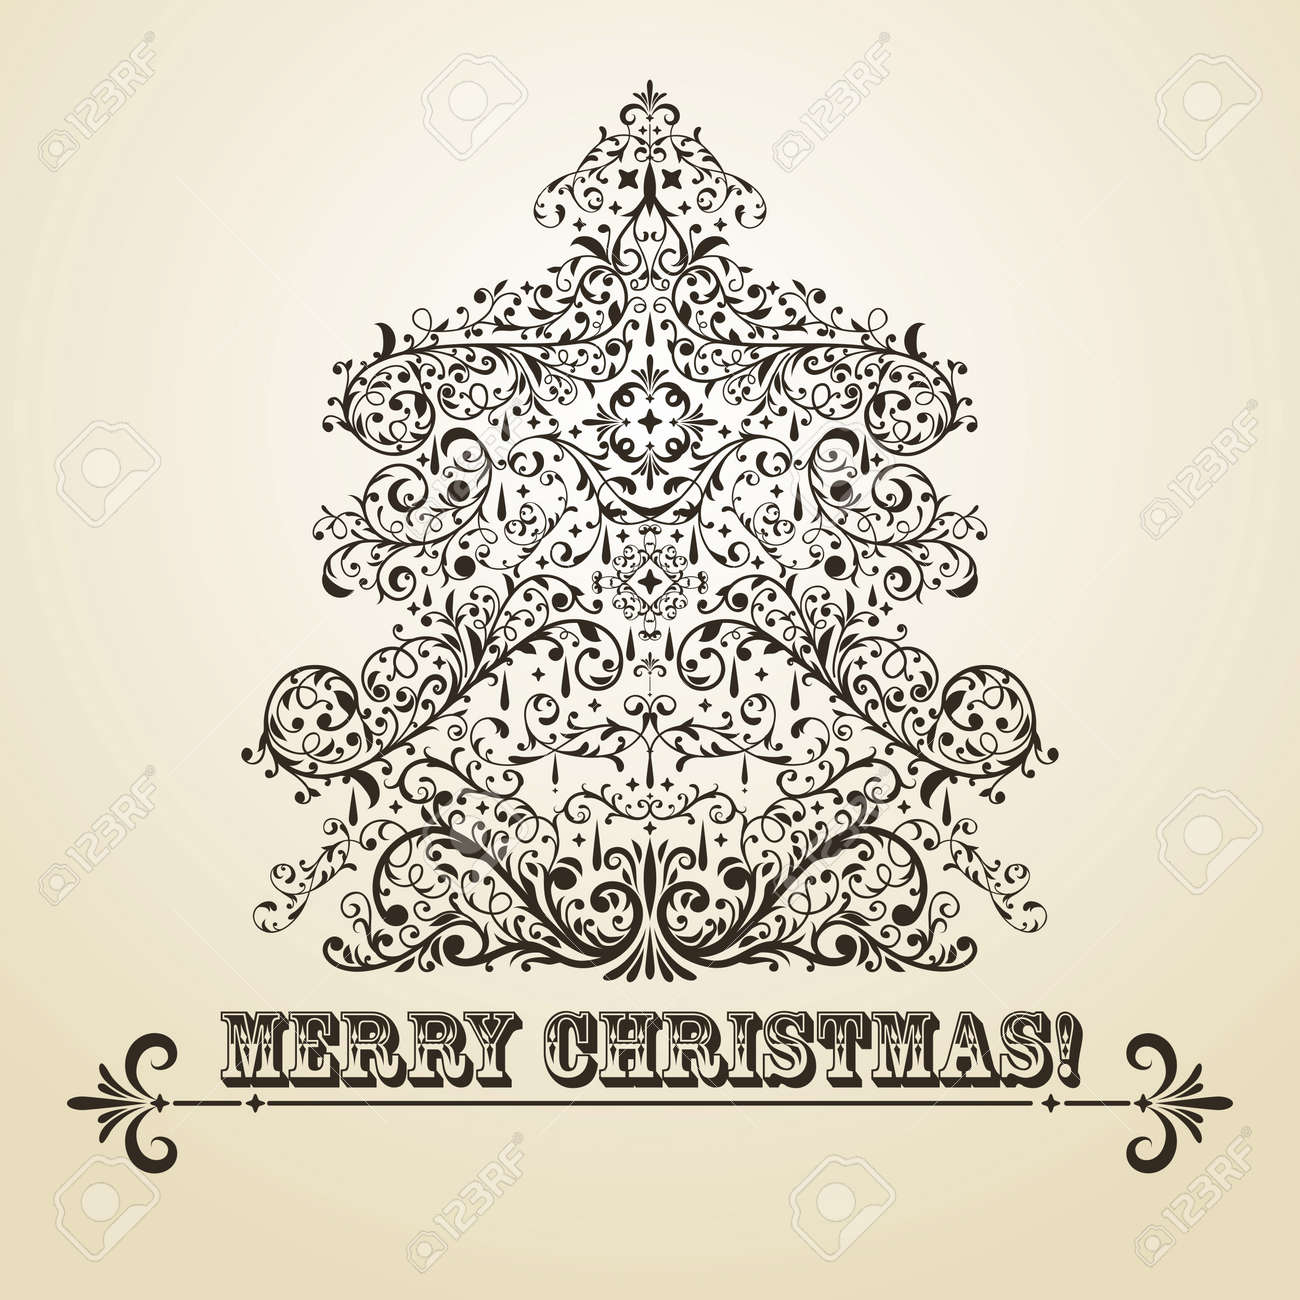 vintage Christmas greeting card with highly detailed fir tree on gradient background Stock Vector - 16520047